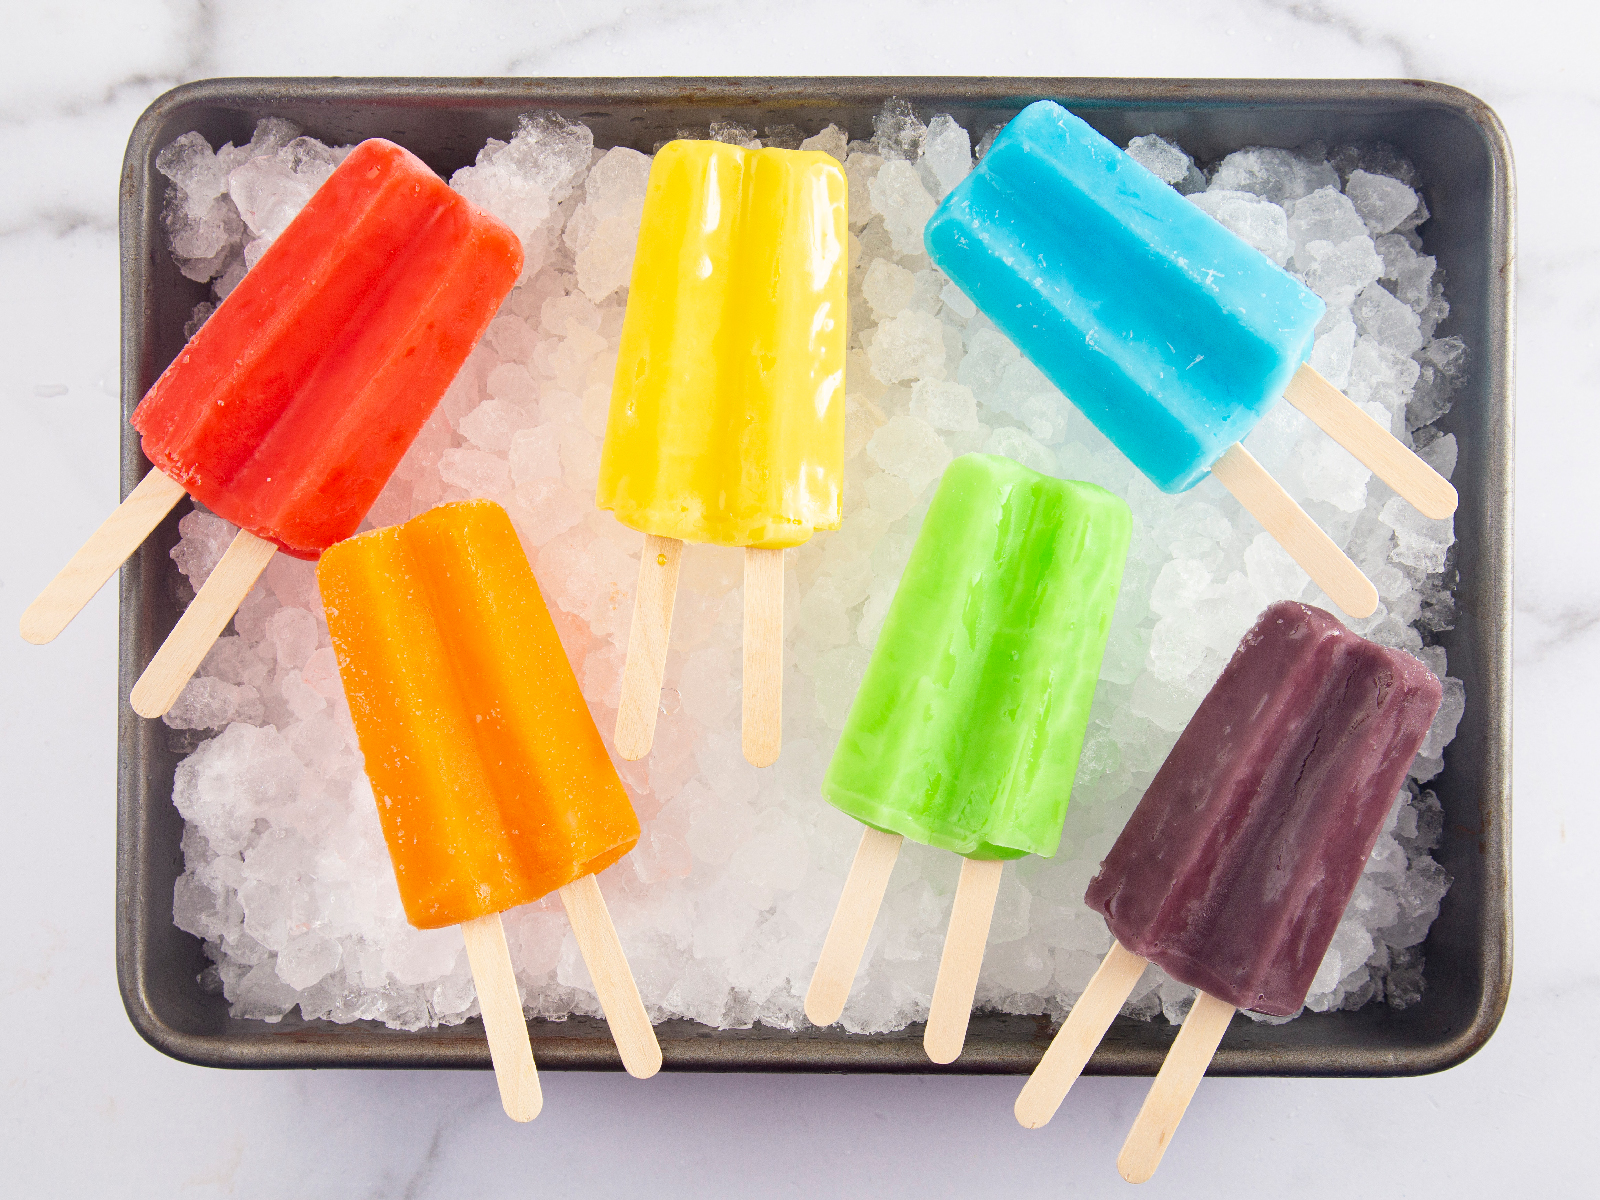 Popsicle Will Bring Back Its Two-Stick 'Double Pops' If It Gets Enough Twitter Likes